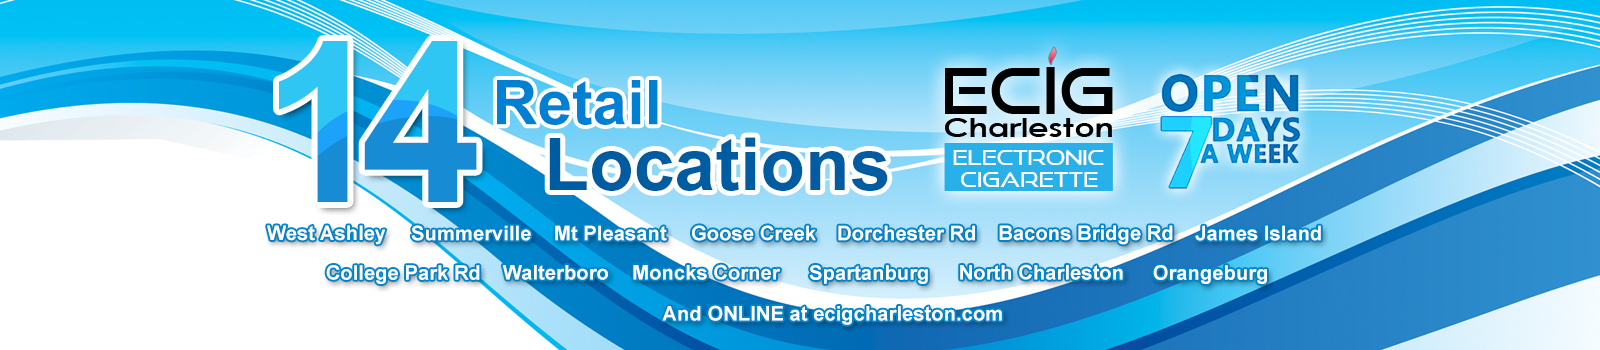 Ecig Charleston 14 - Retail Outlets!